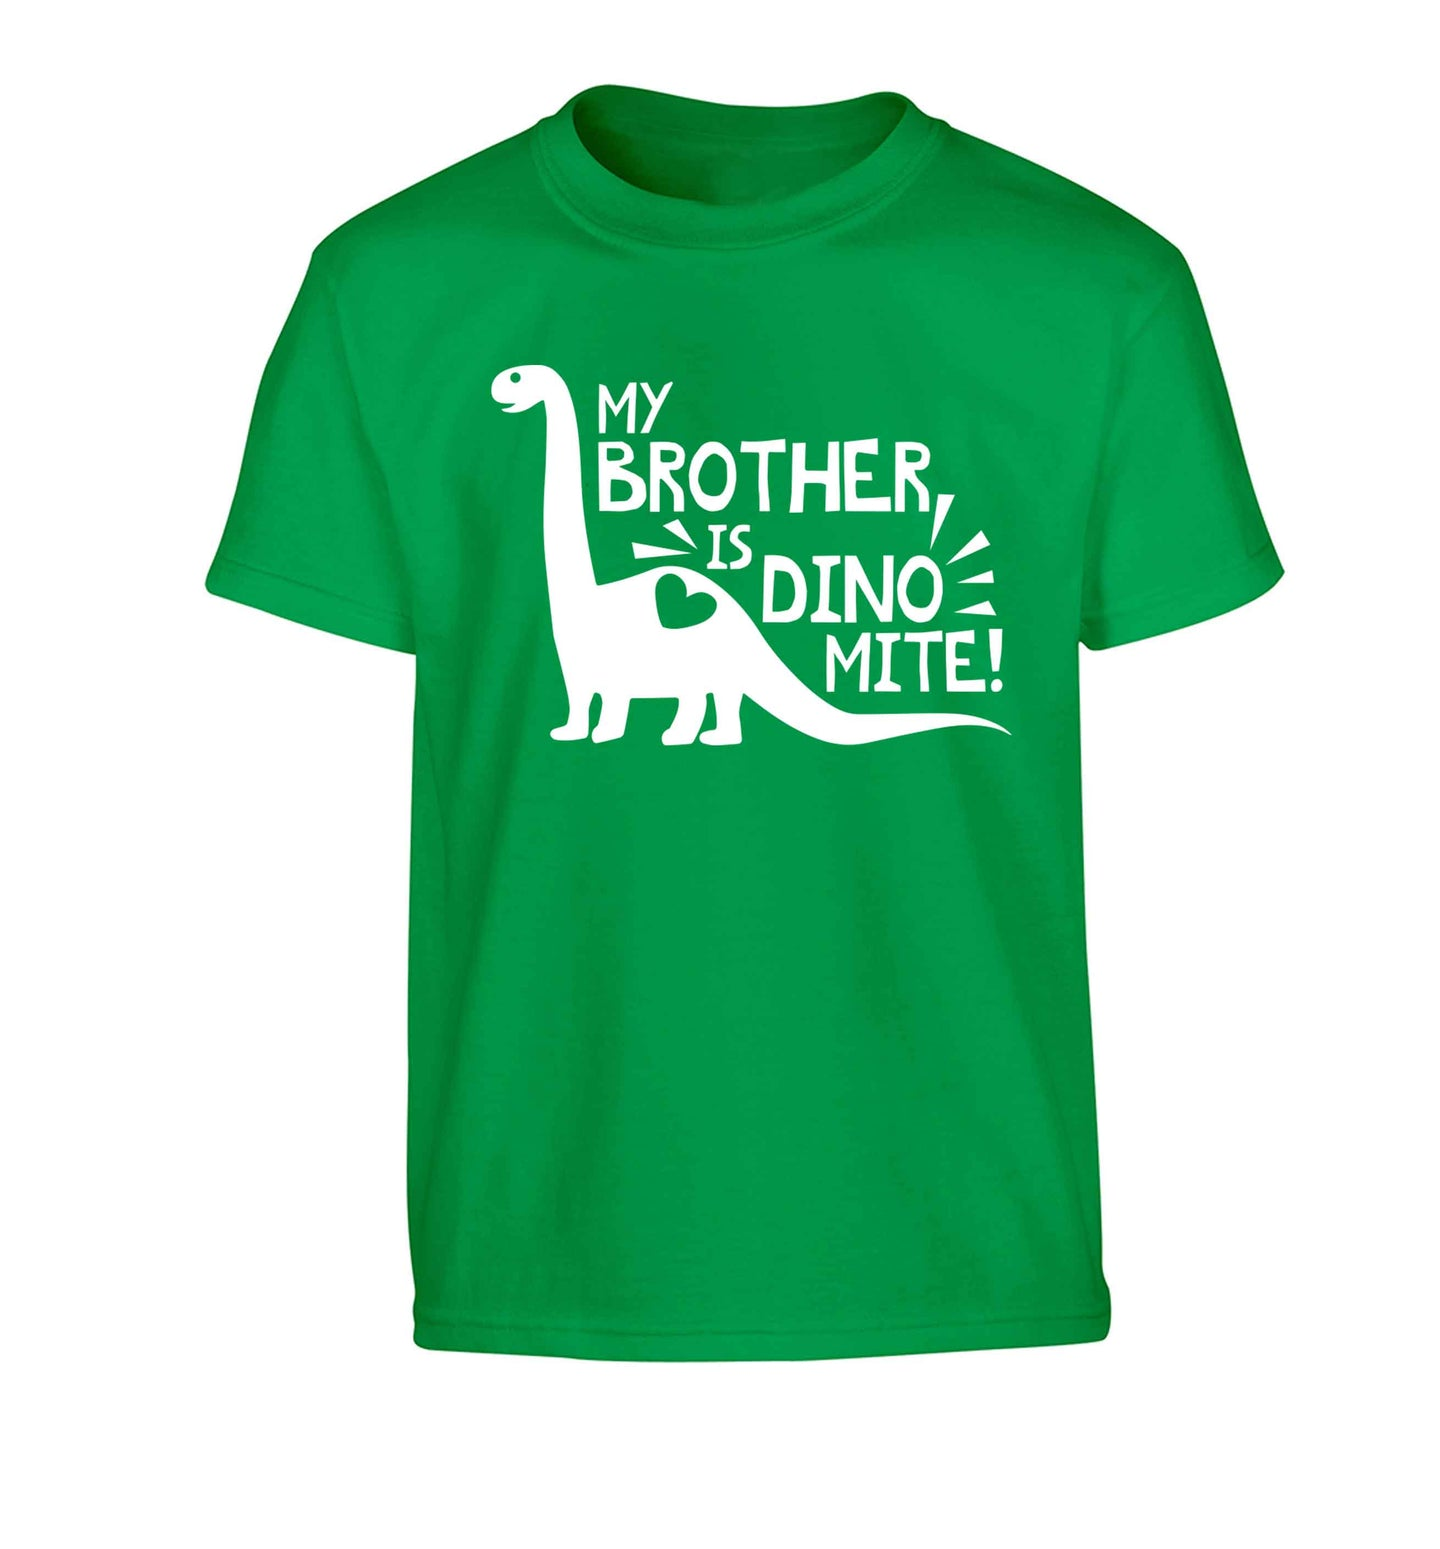 My brother is dinomite! Children's green Tshirt 12-13 Years